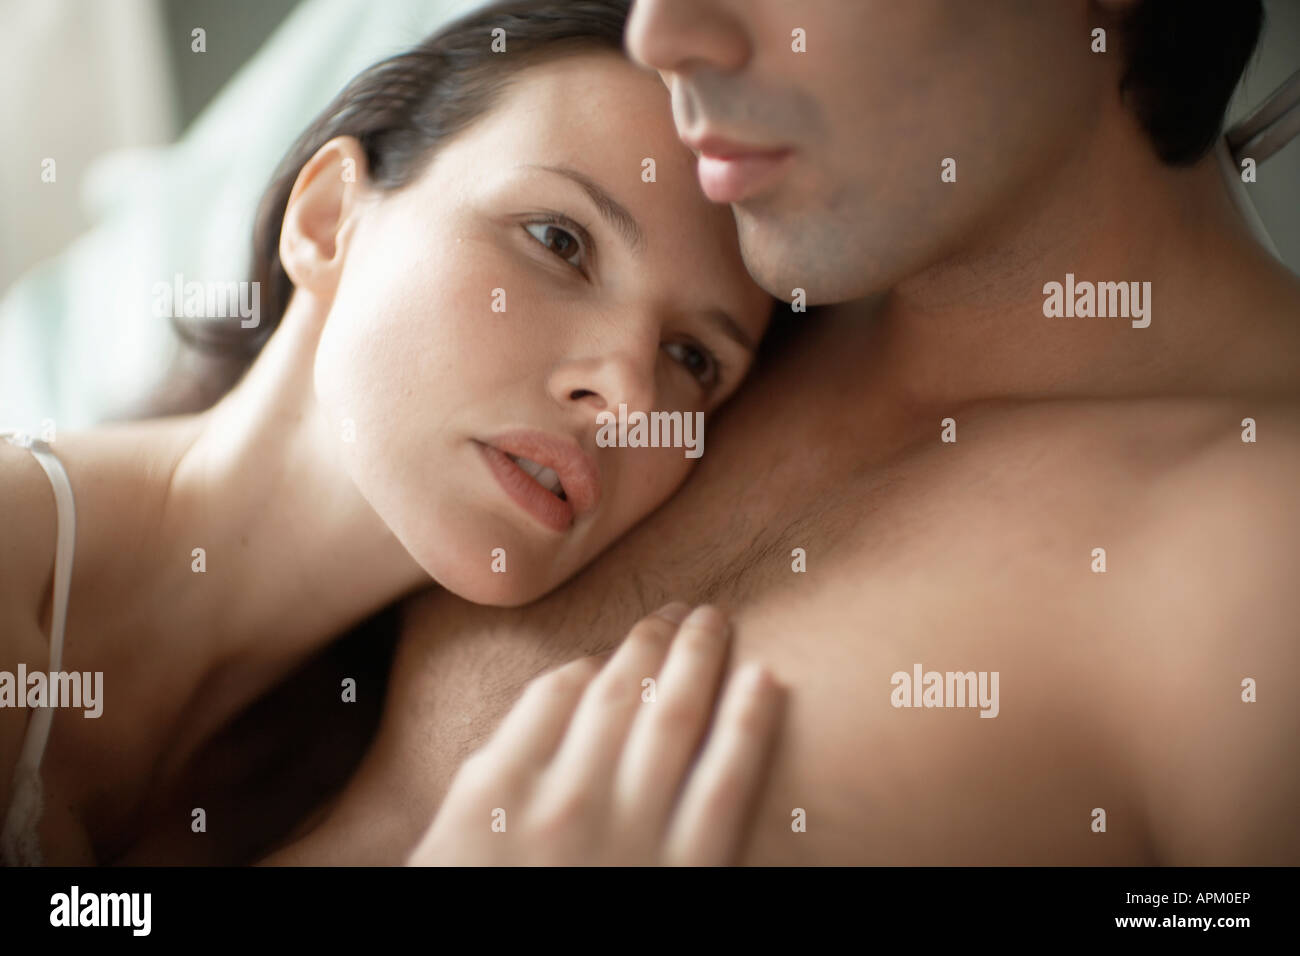 Mans chest touching woman 12 Signs